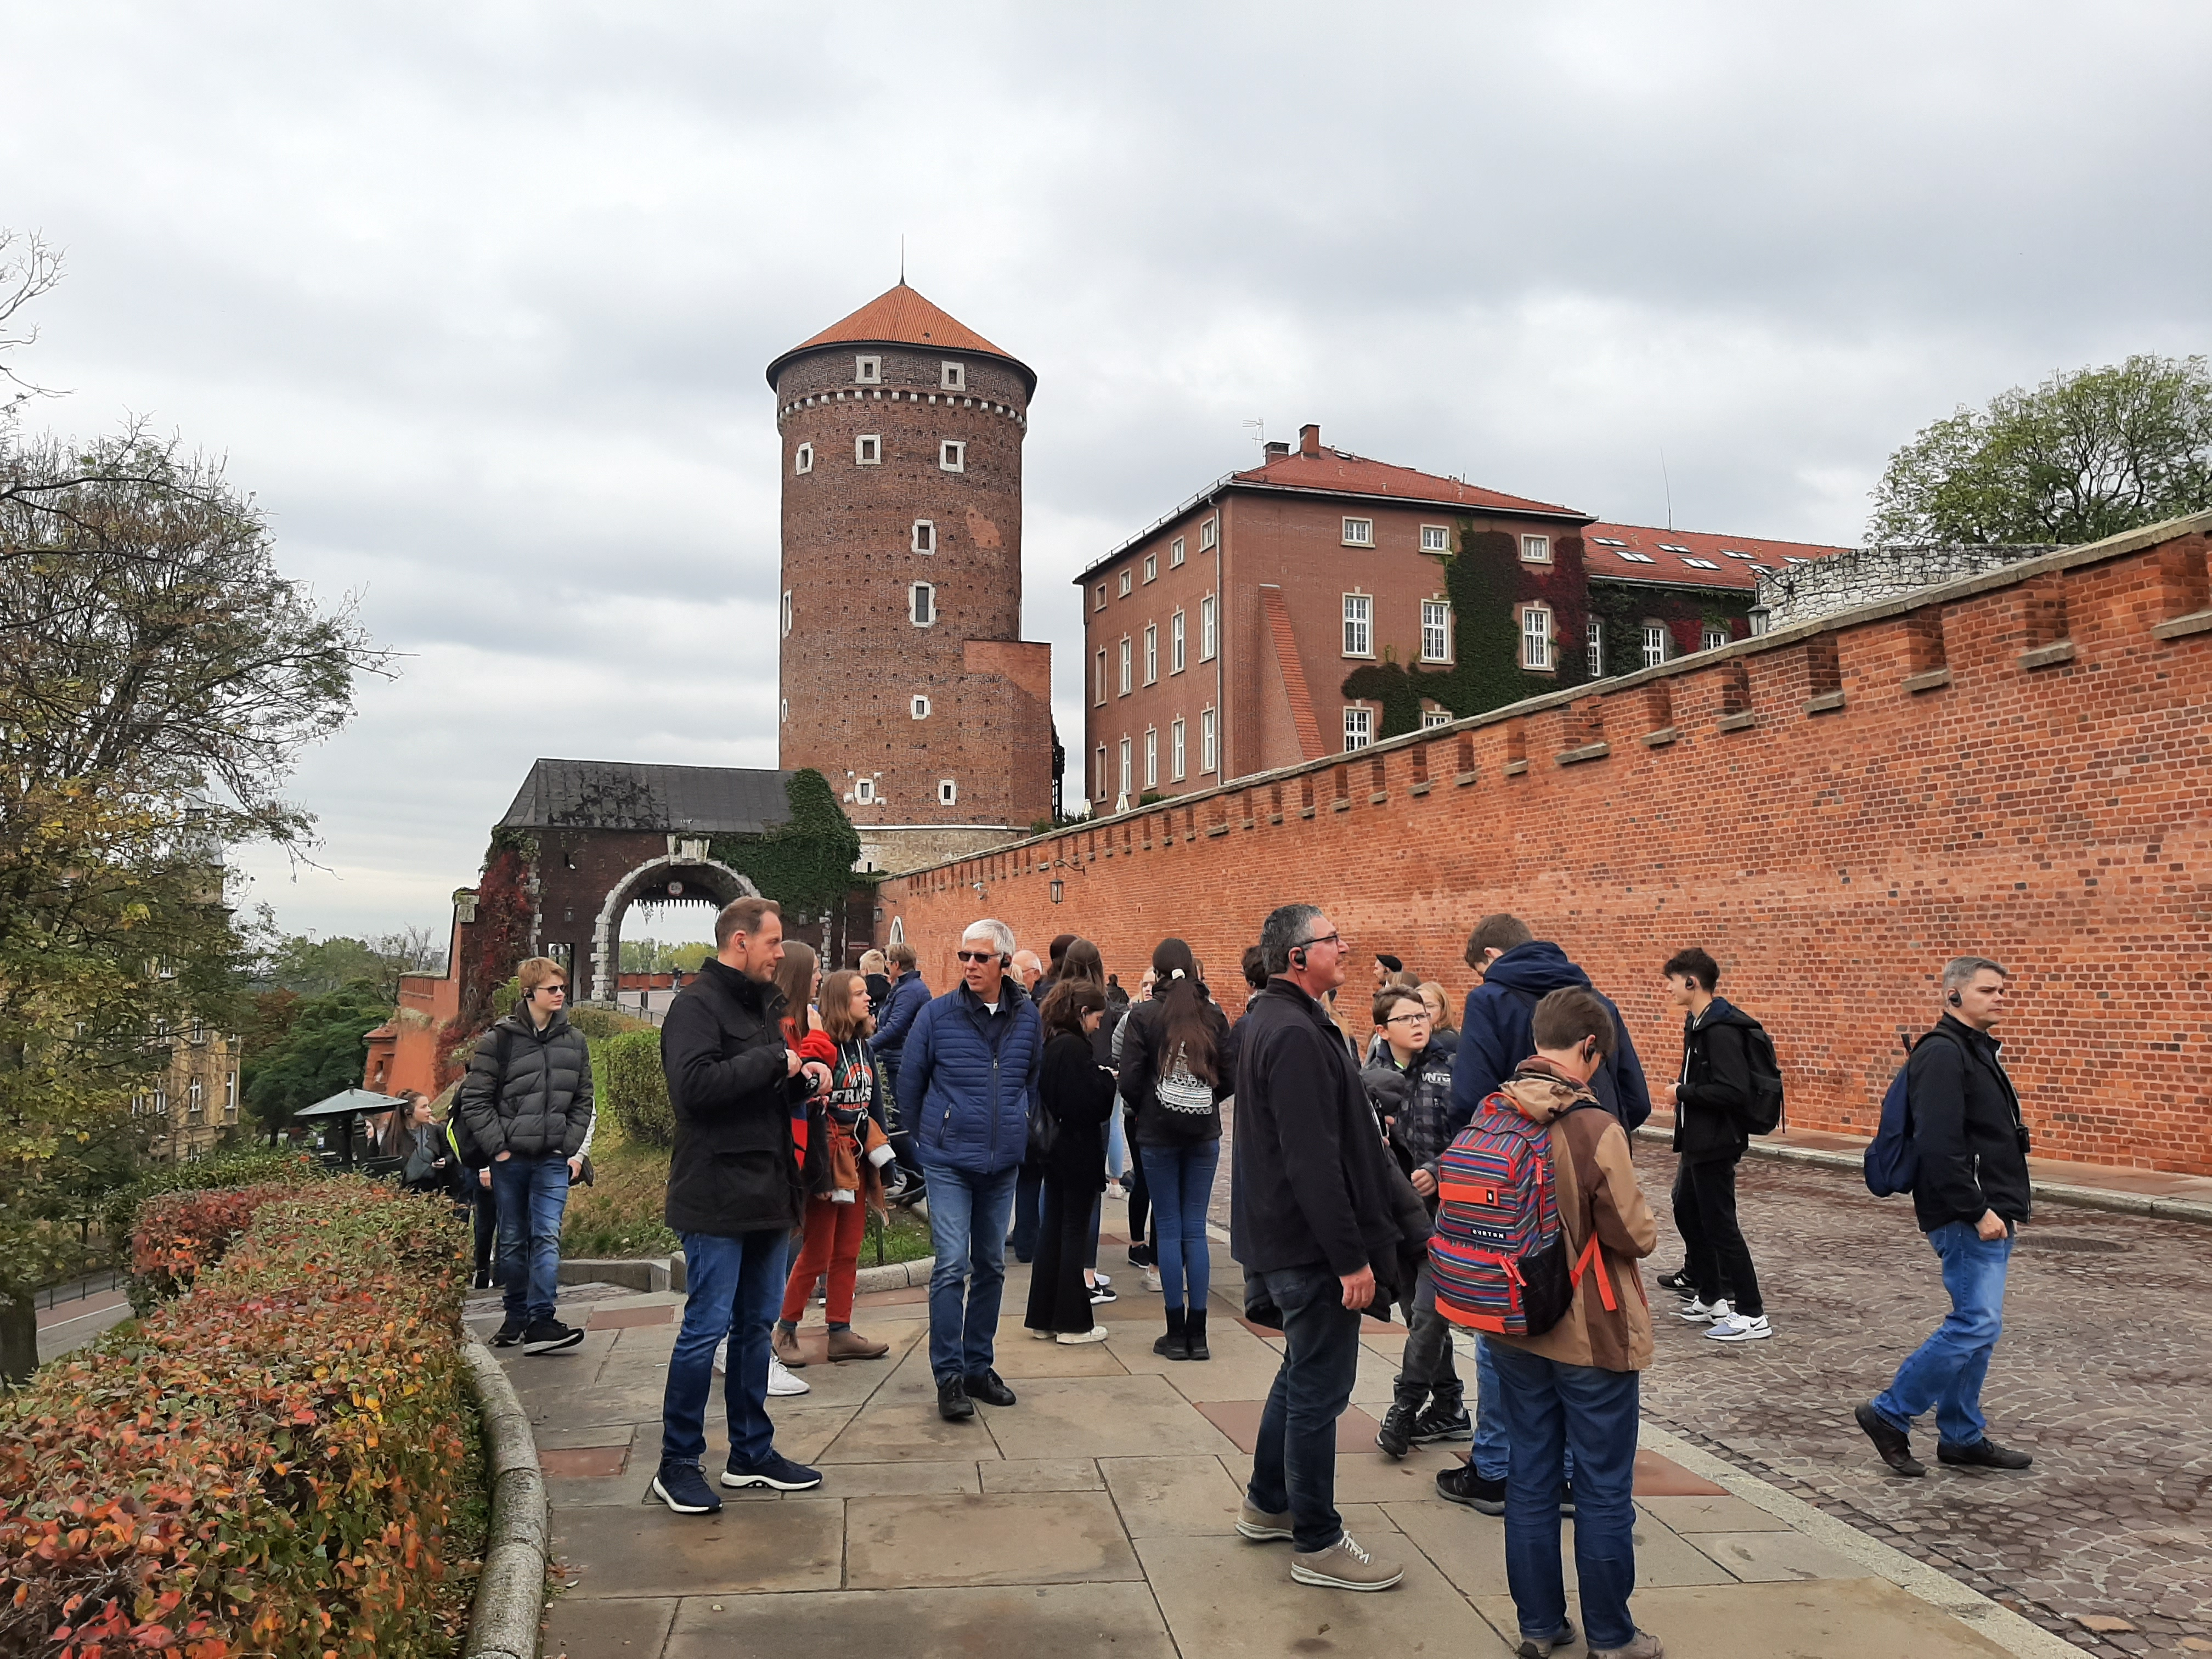 Krakau - Burg Wawel